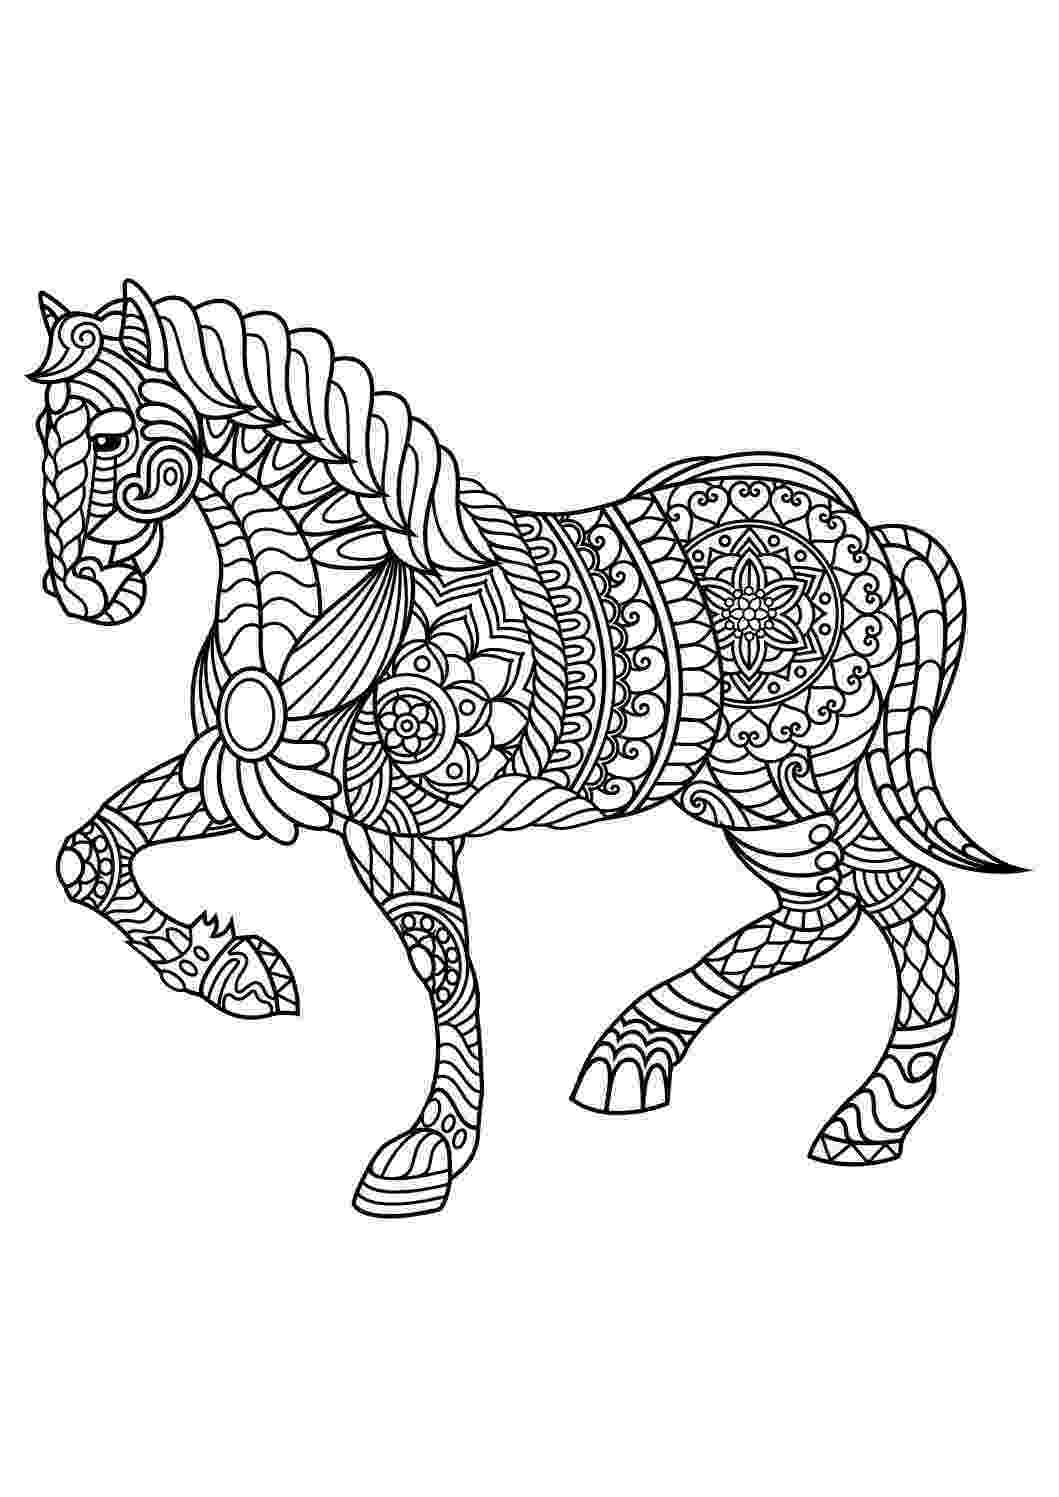 animal coloring pages printable all animals coloring pages download and print for free coloring printable animal pages